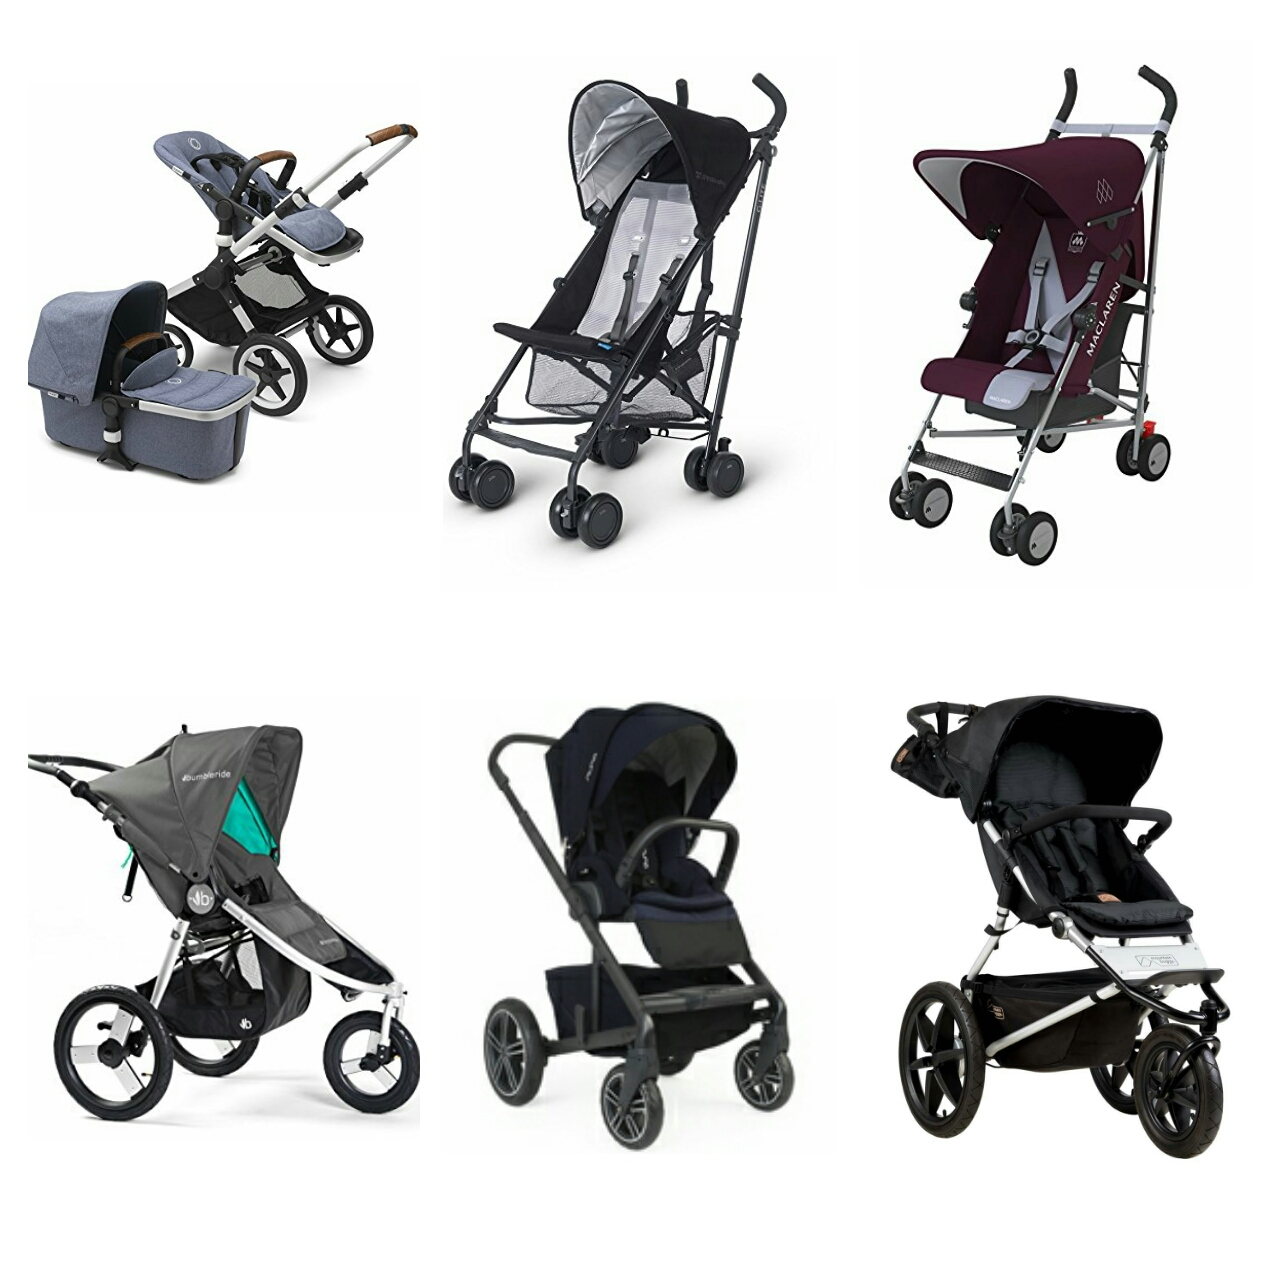 Maclaren Stroller Uk Reviews Non Toxic Strollers Without Flame Retardant Chemicals